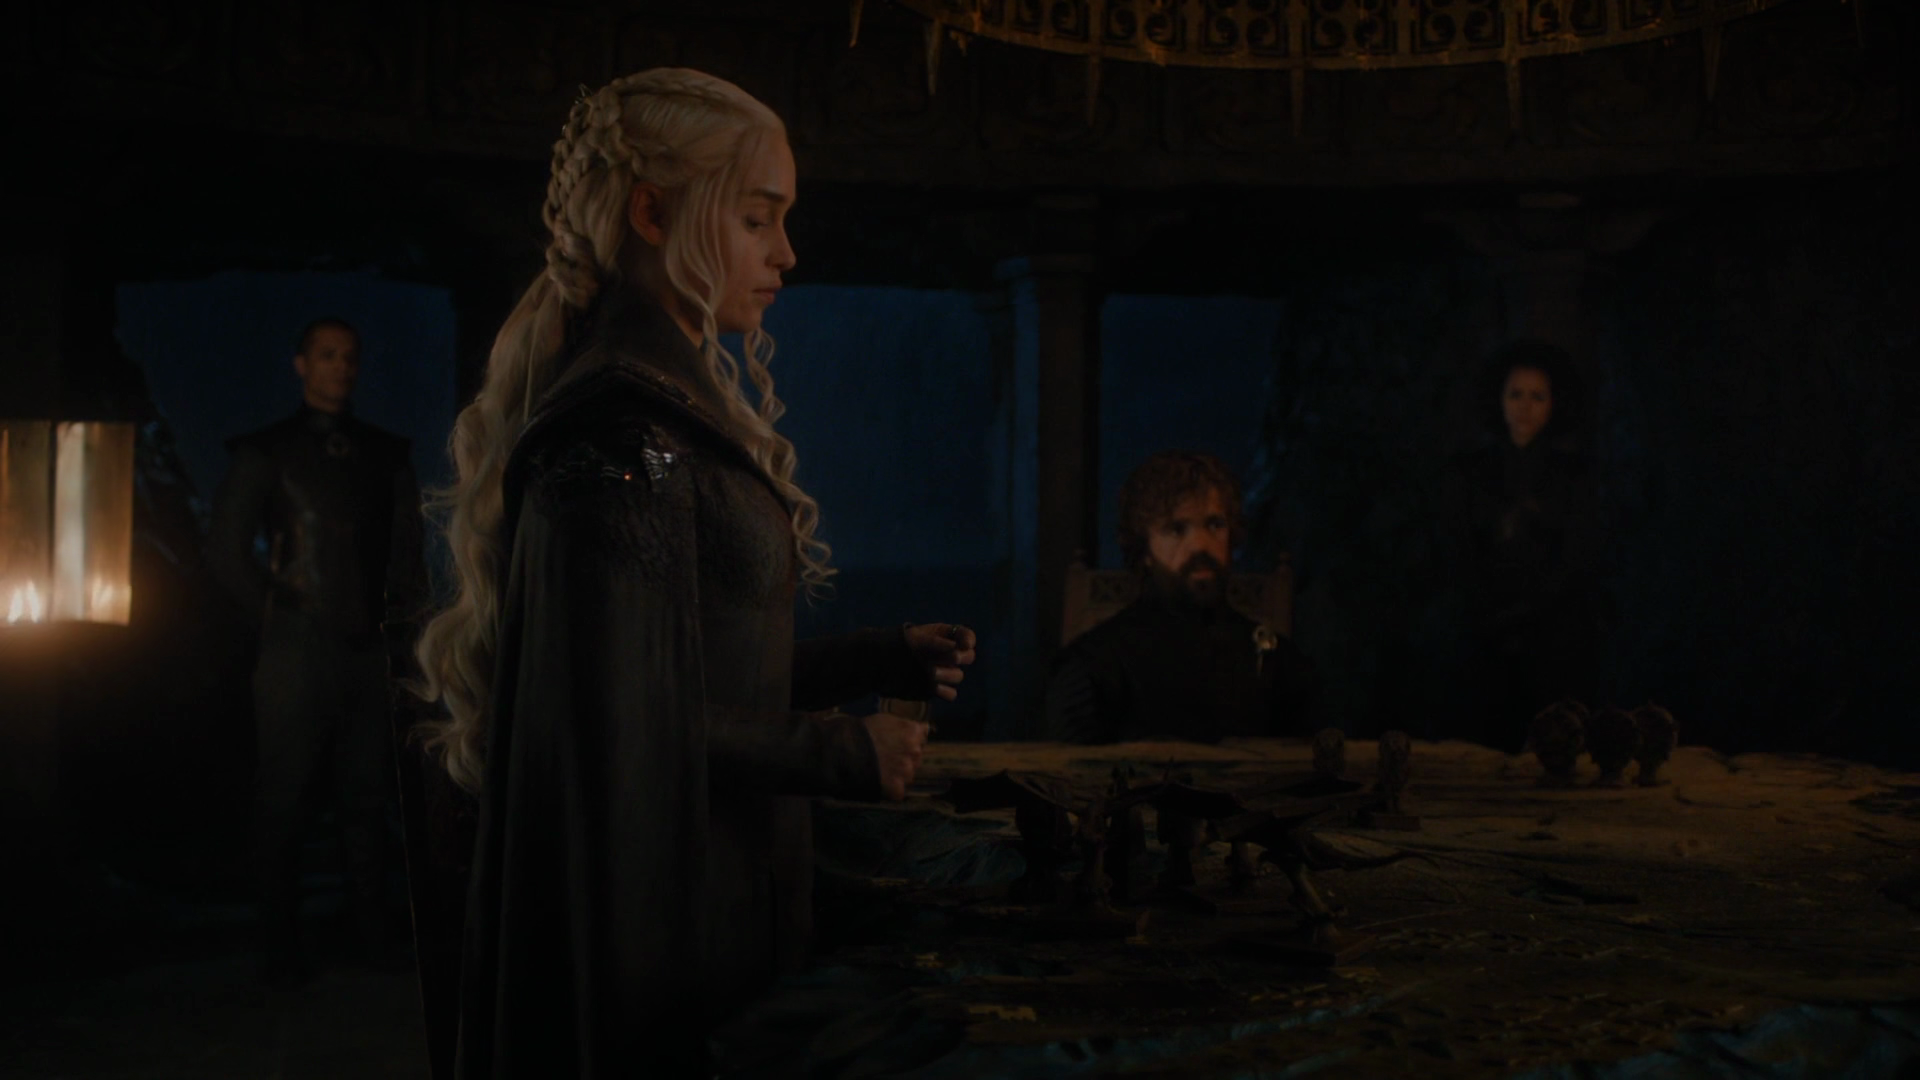 Game of Thrones S07E02 Stormborn 1080p 10bit AMZN WEB-DL DD+5 1 x265 HEVC-MZABI